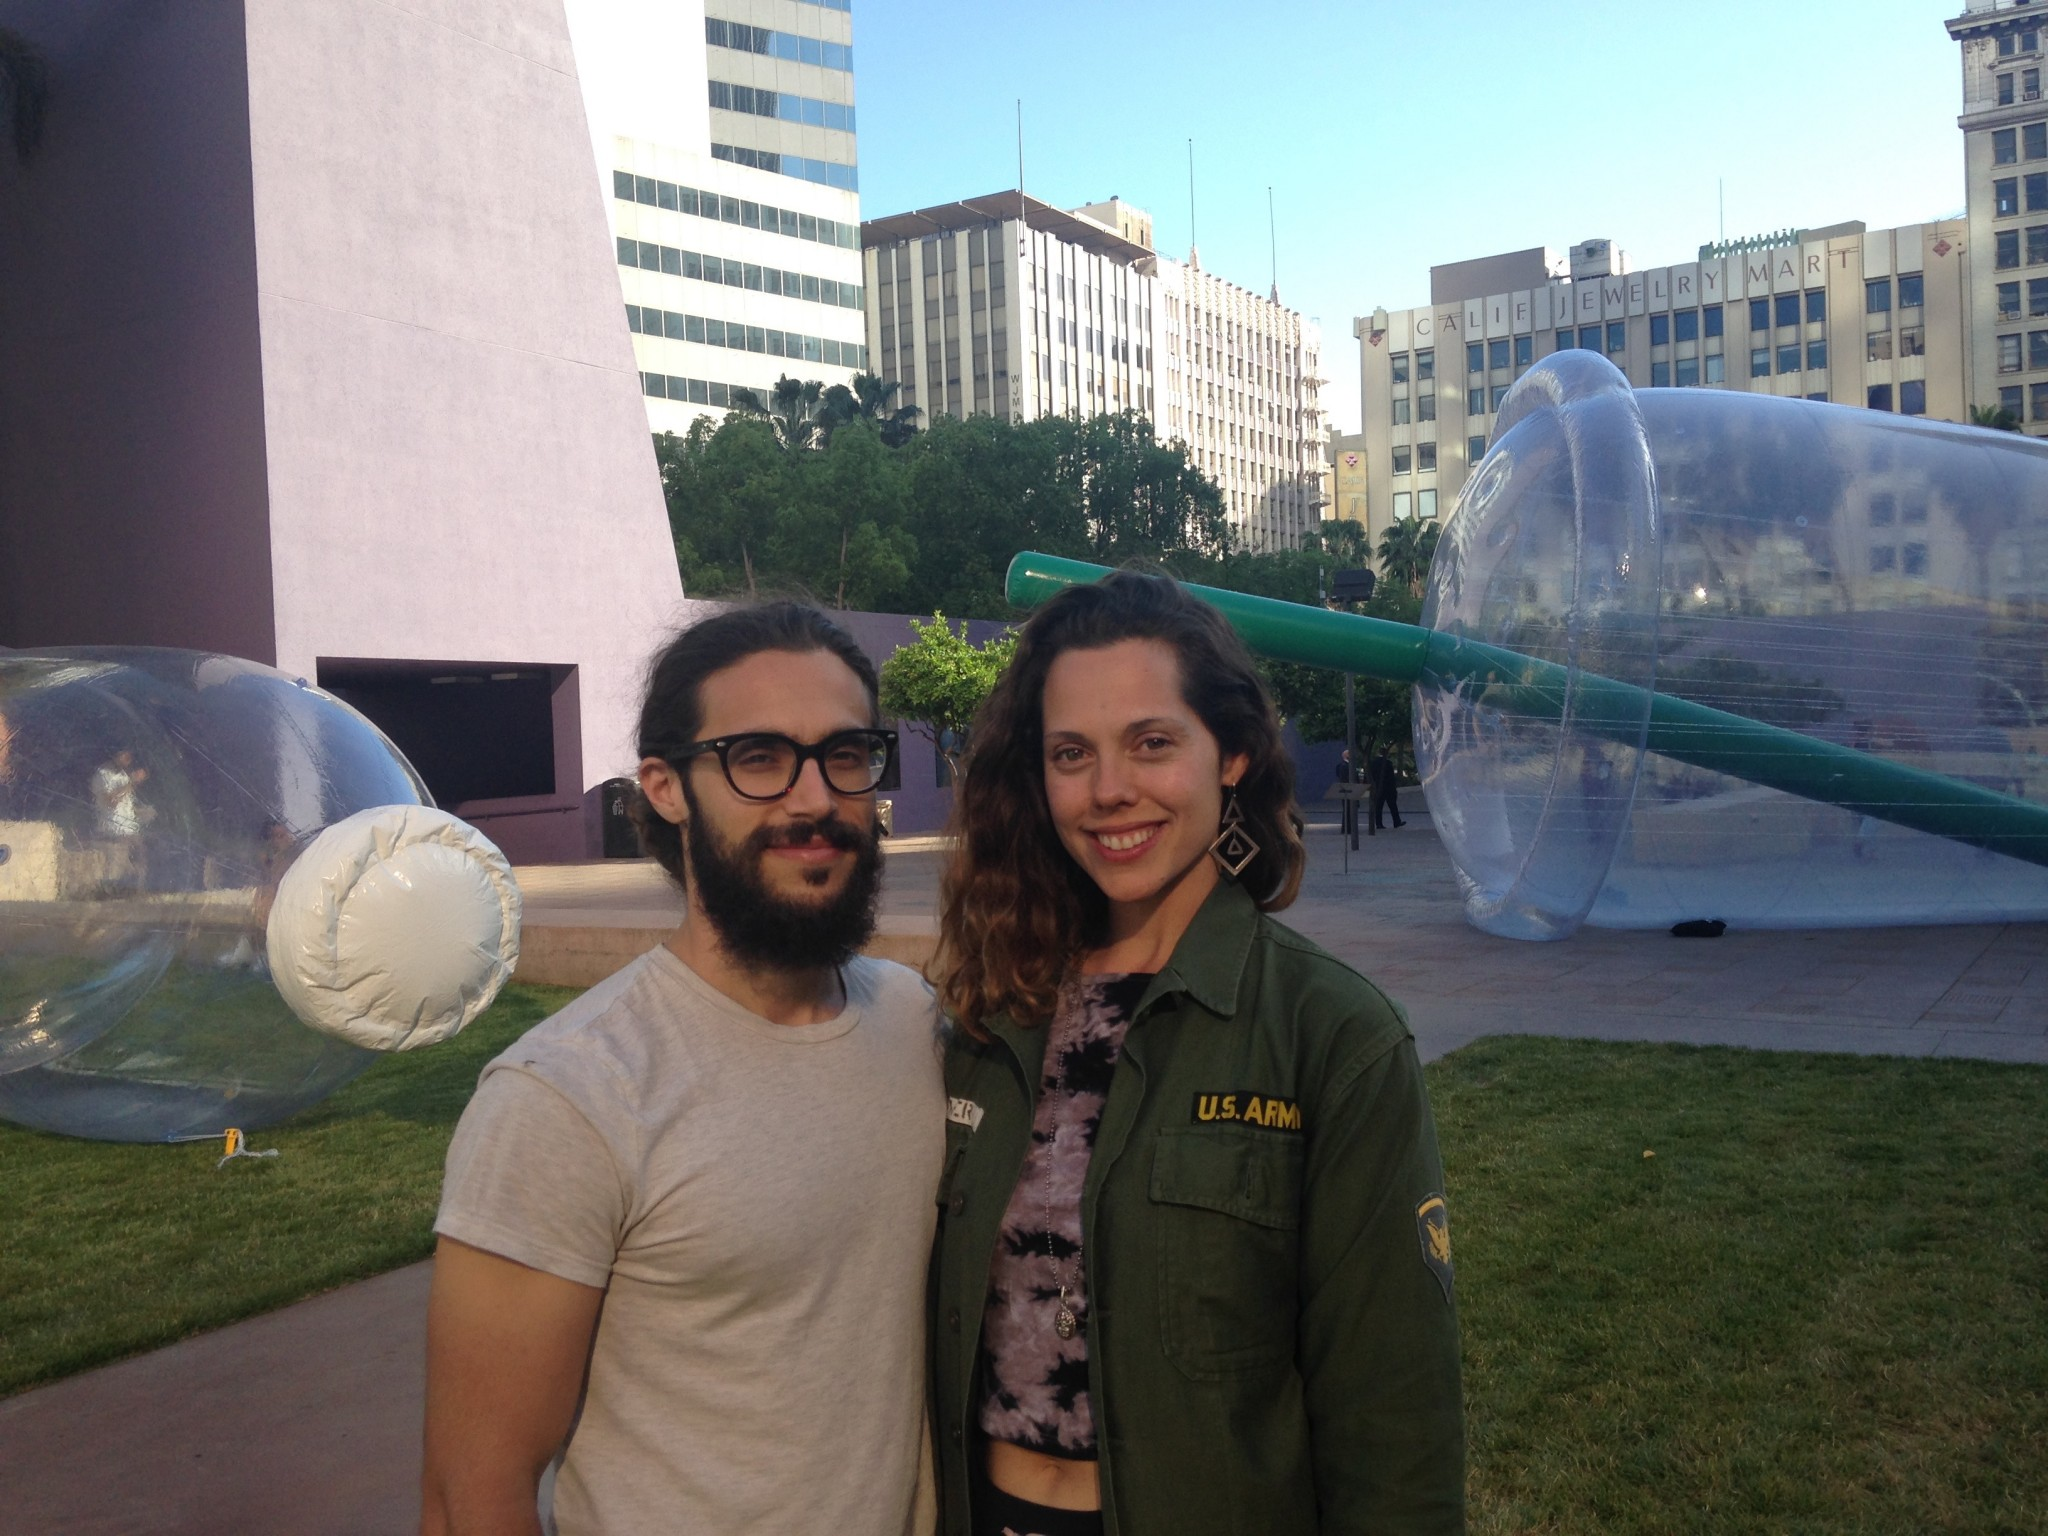 The goal of artists Matthew LaPenta and Jana Cruder is to change how people think about plastic, and influence consumer behavior. (Avishay Artsy)